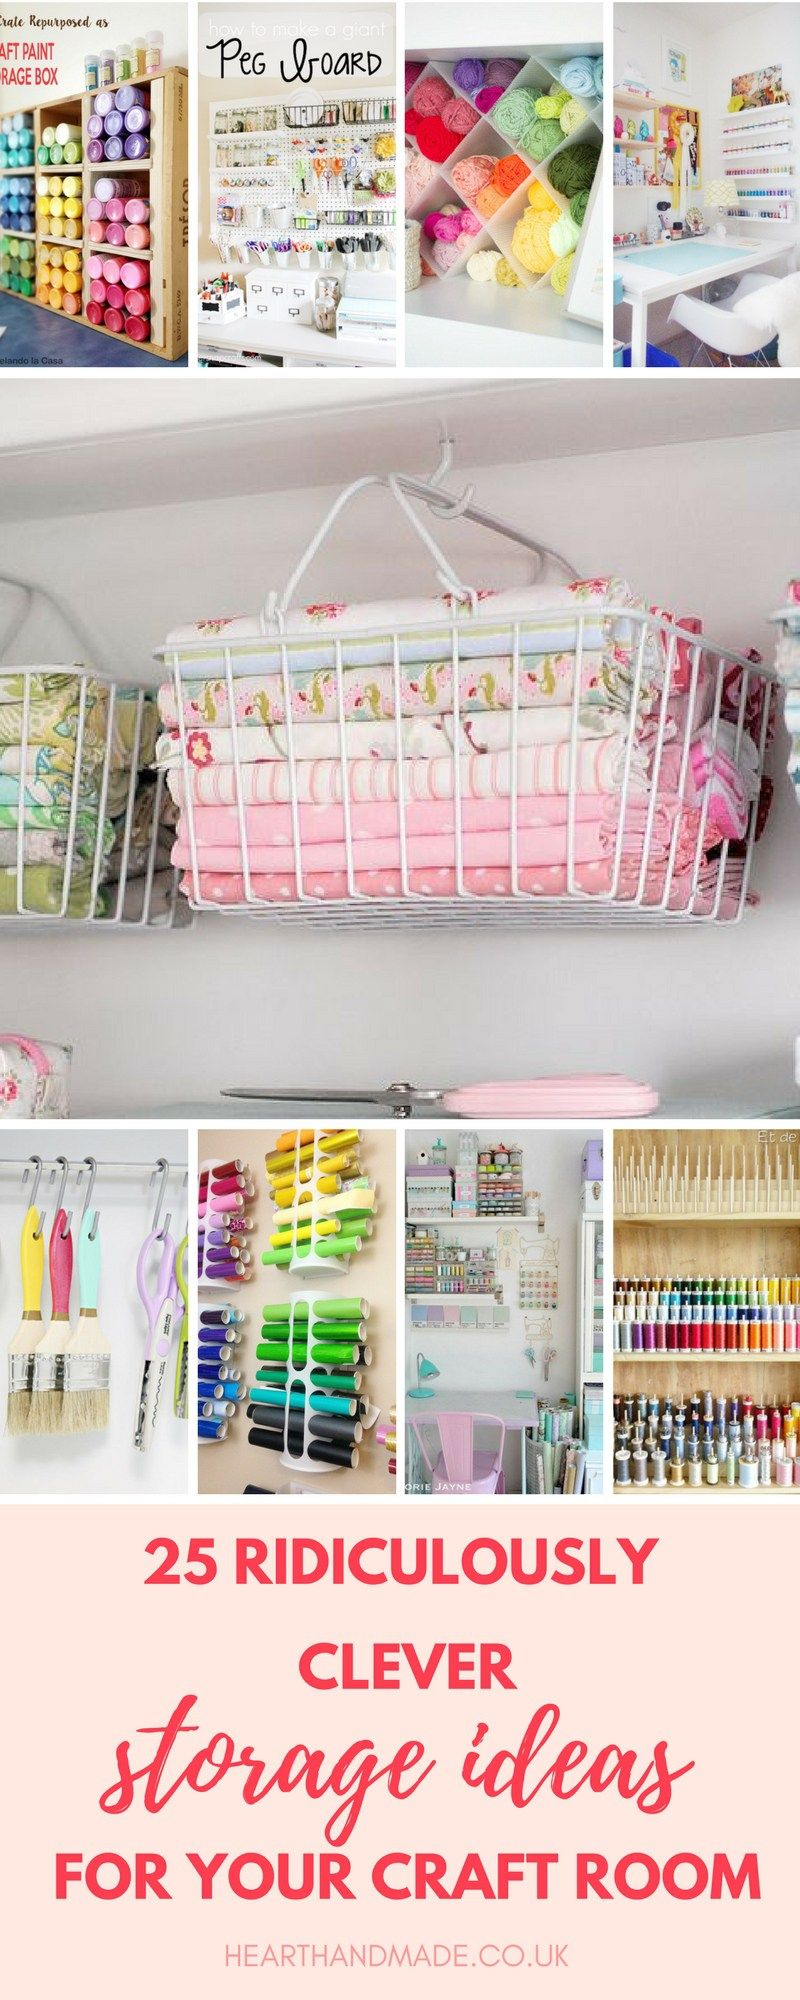 Attrayant If Youu0027re In Need Of Craft Storage Ideas For Your Craft Room Then This List  Is Exactly What You Need To Read! This Post Has Small Space Craft Storage  Ideas ...